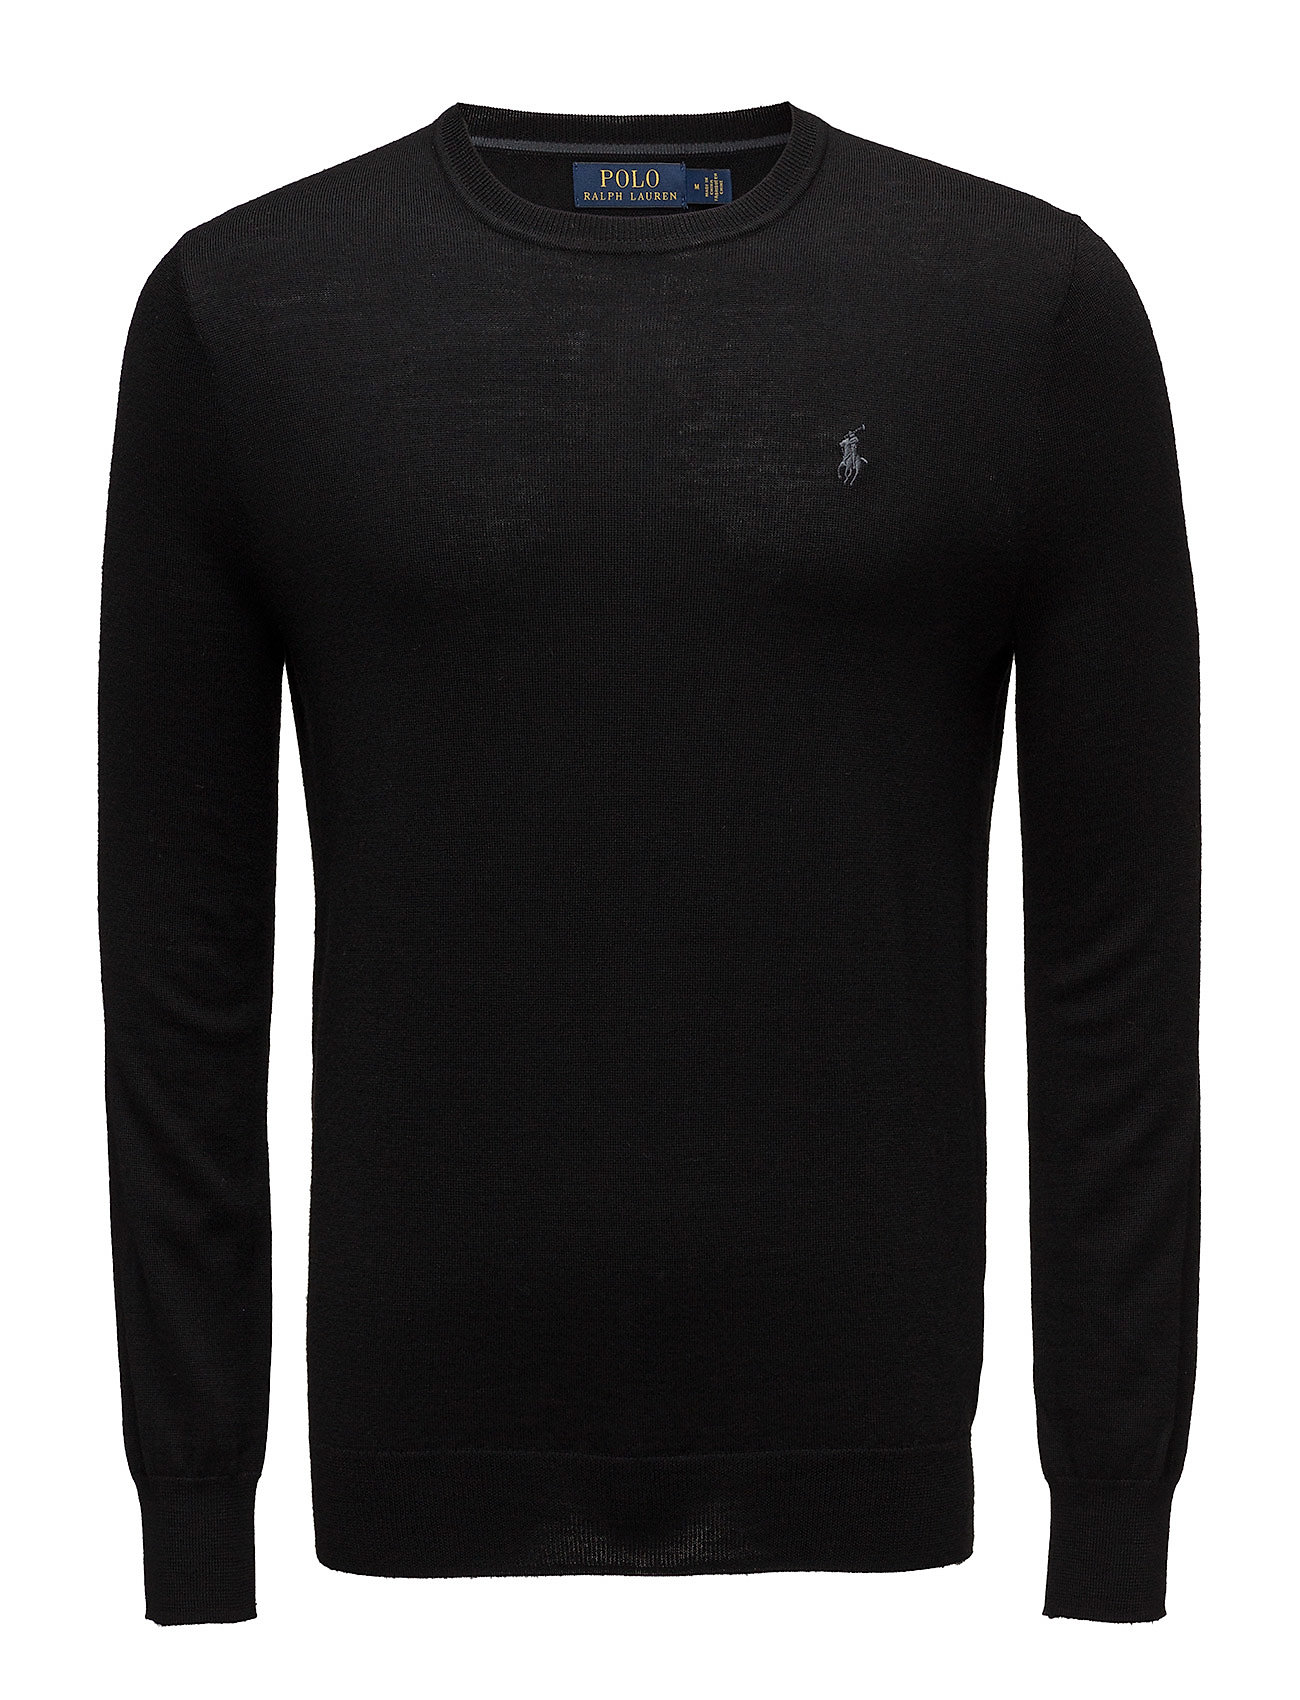 Ralph Lauren Sf Cn sweaterpolo Pp Ls Sleeve long BlackPolo CBodrxe